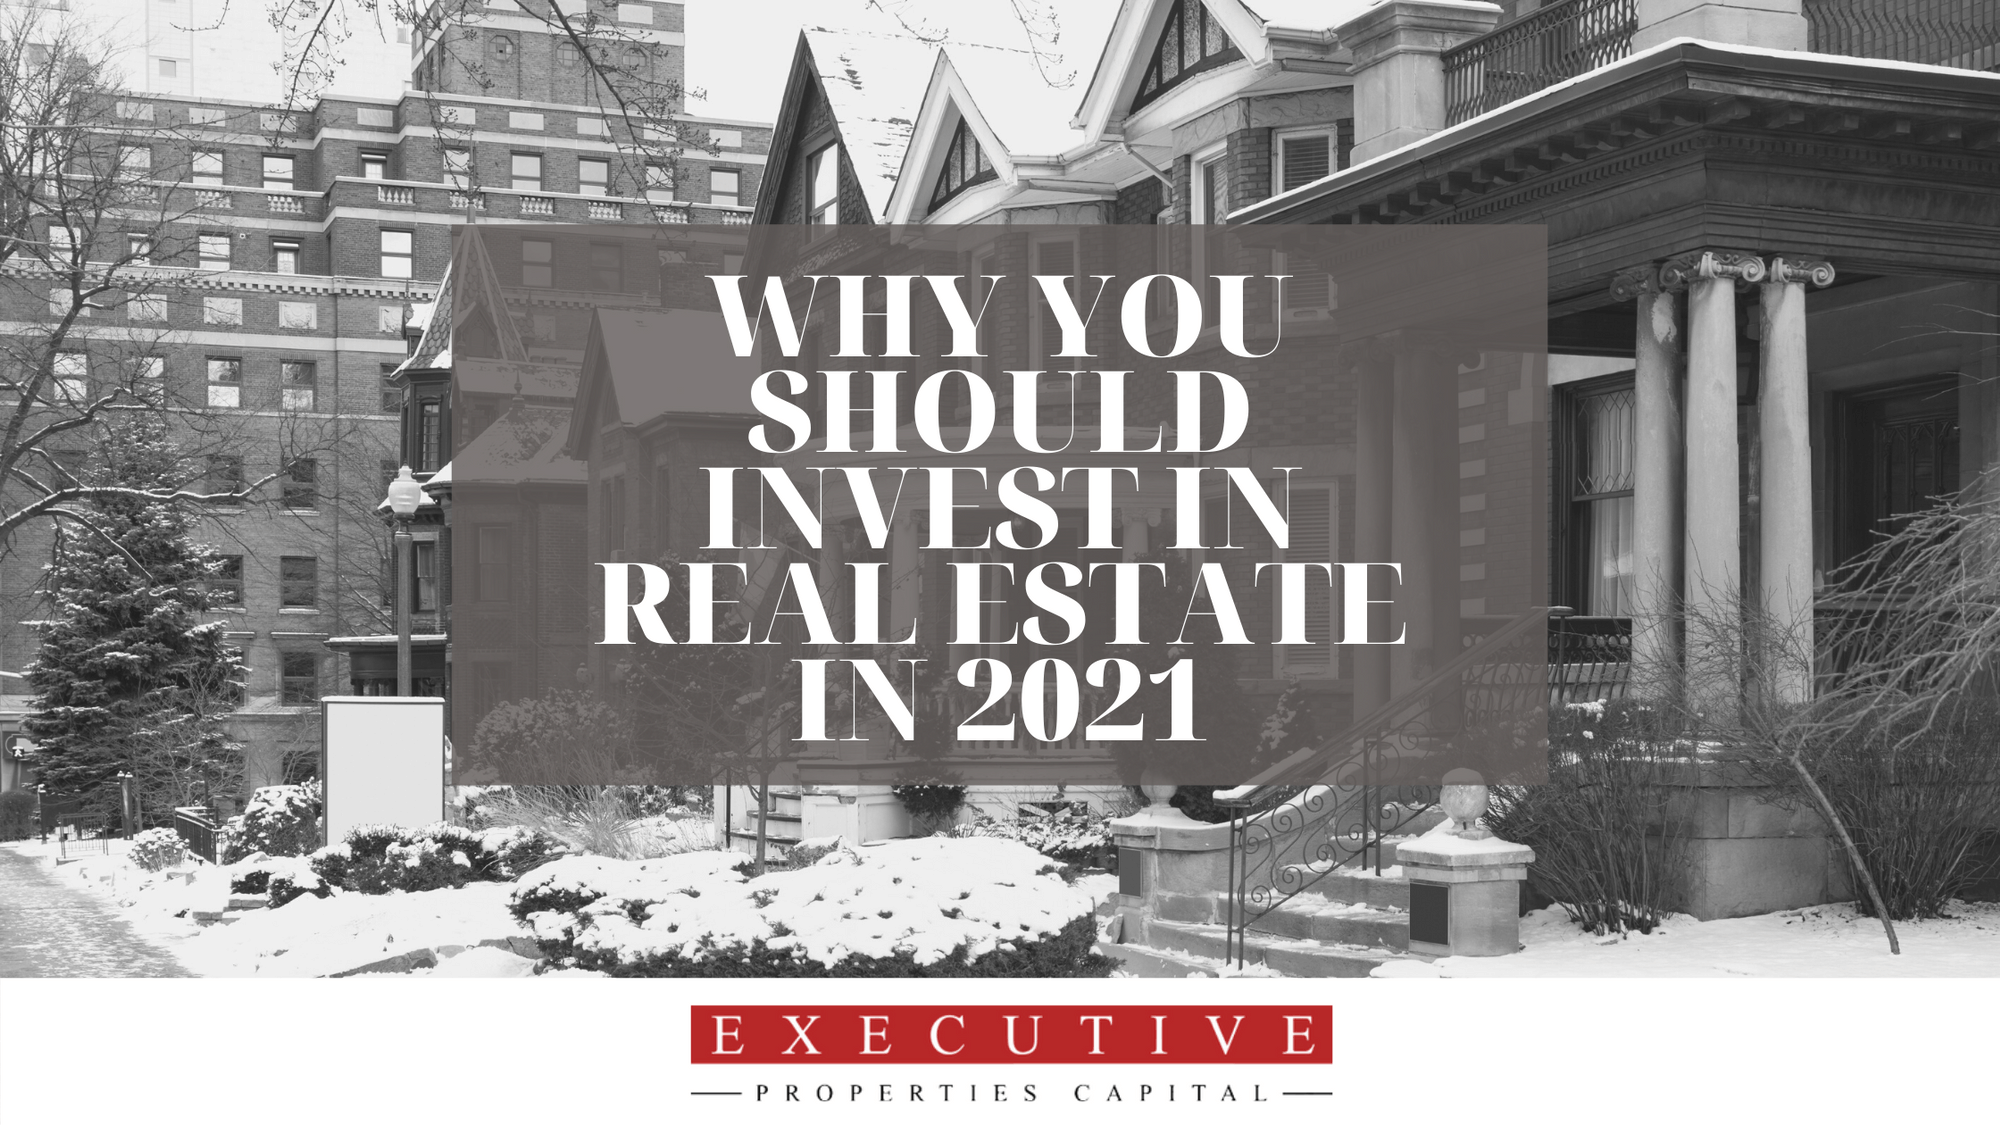 Why you should invest in real estate in 2021